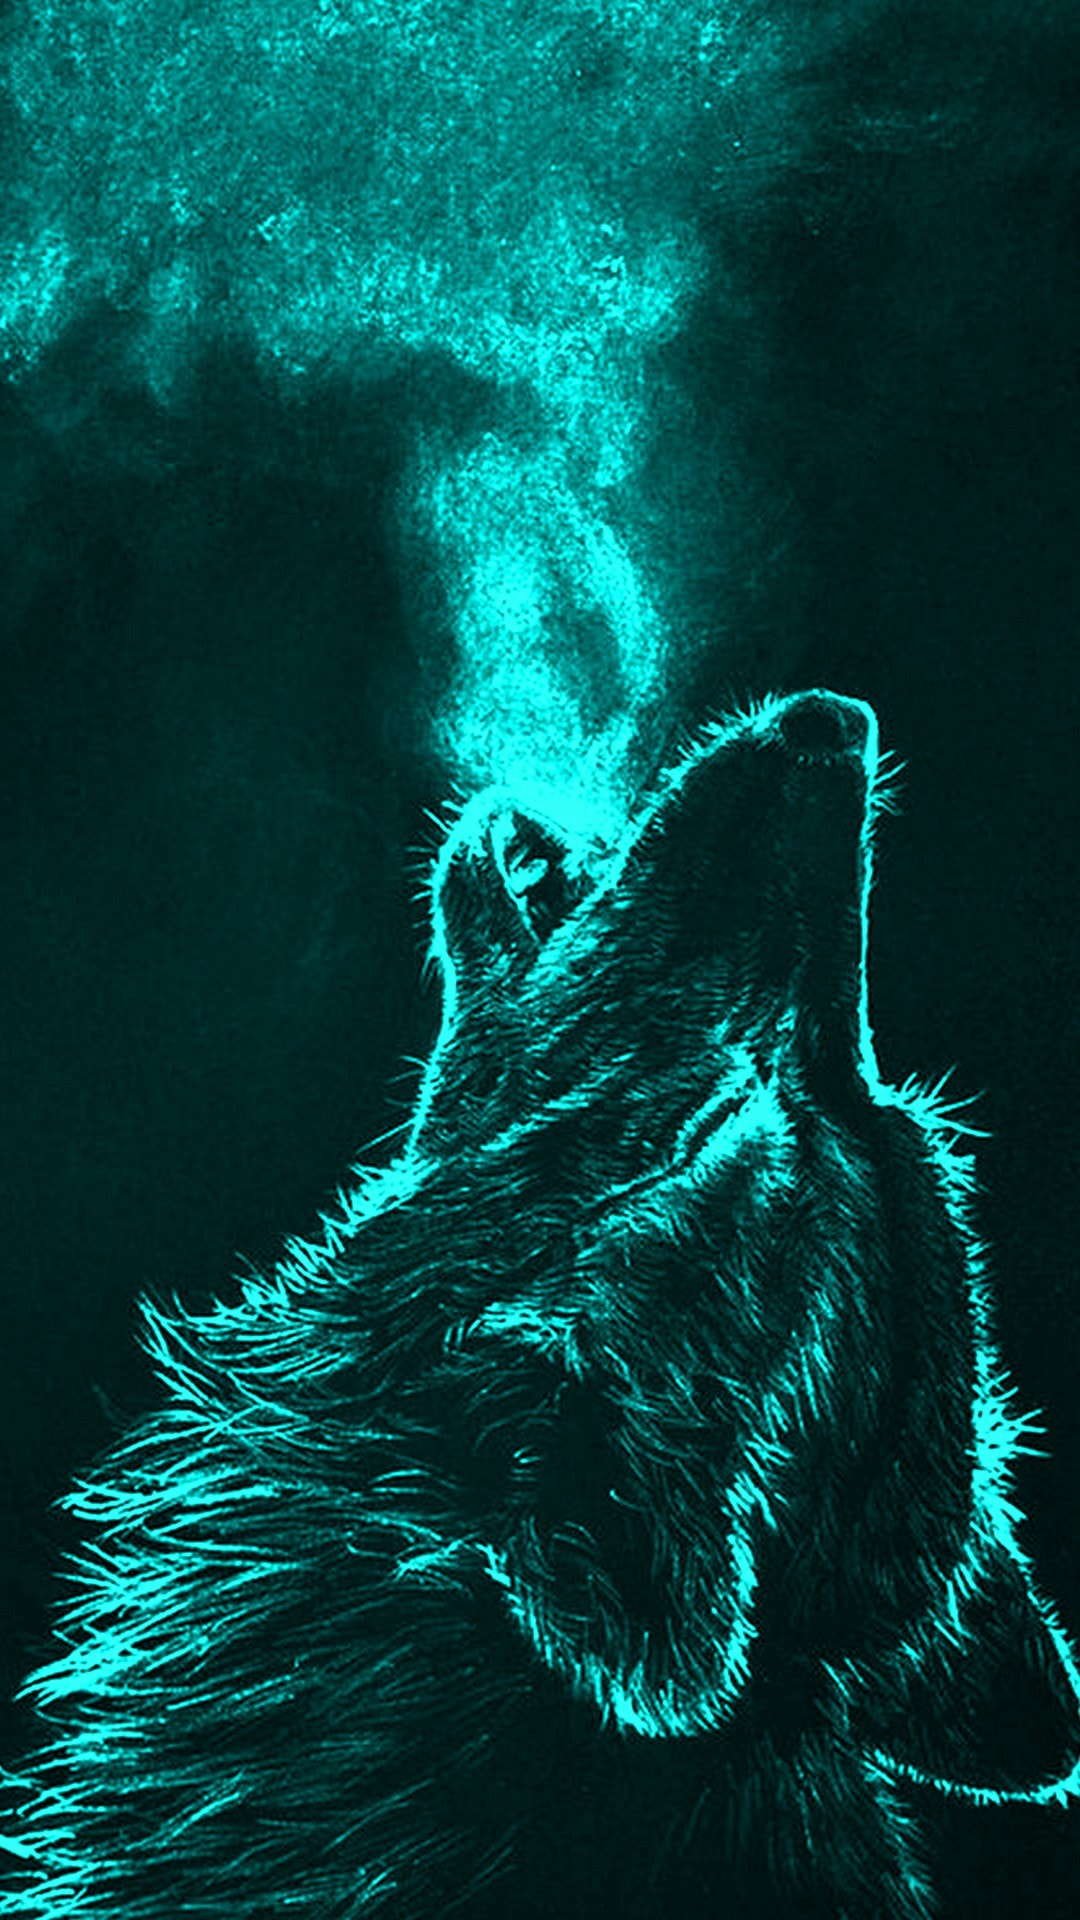 Iphone Wolf Wallpaper - KoLPaPer - Awesome Free HD Wallpapers